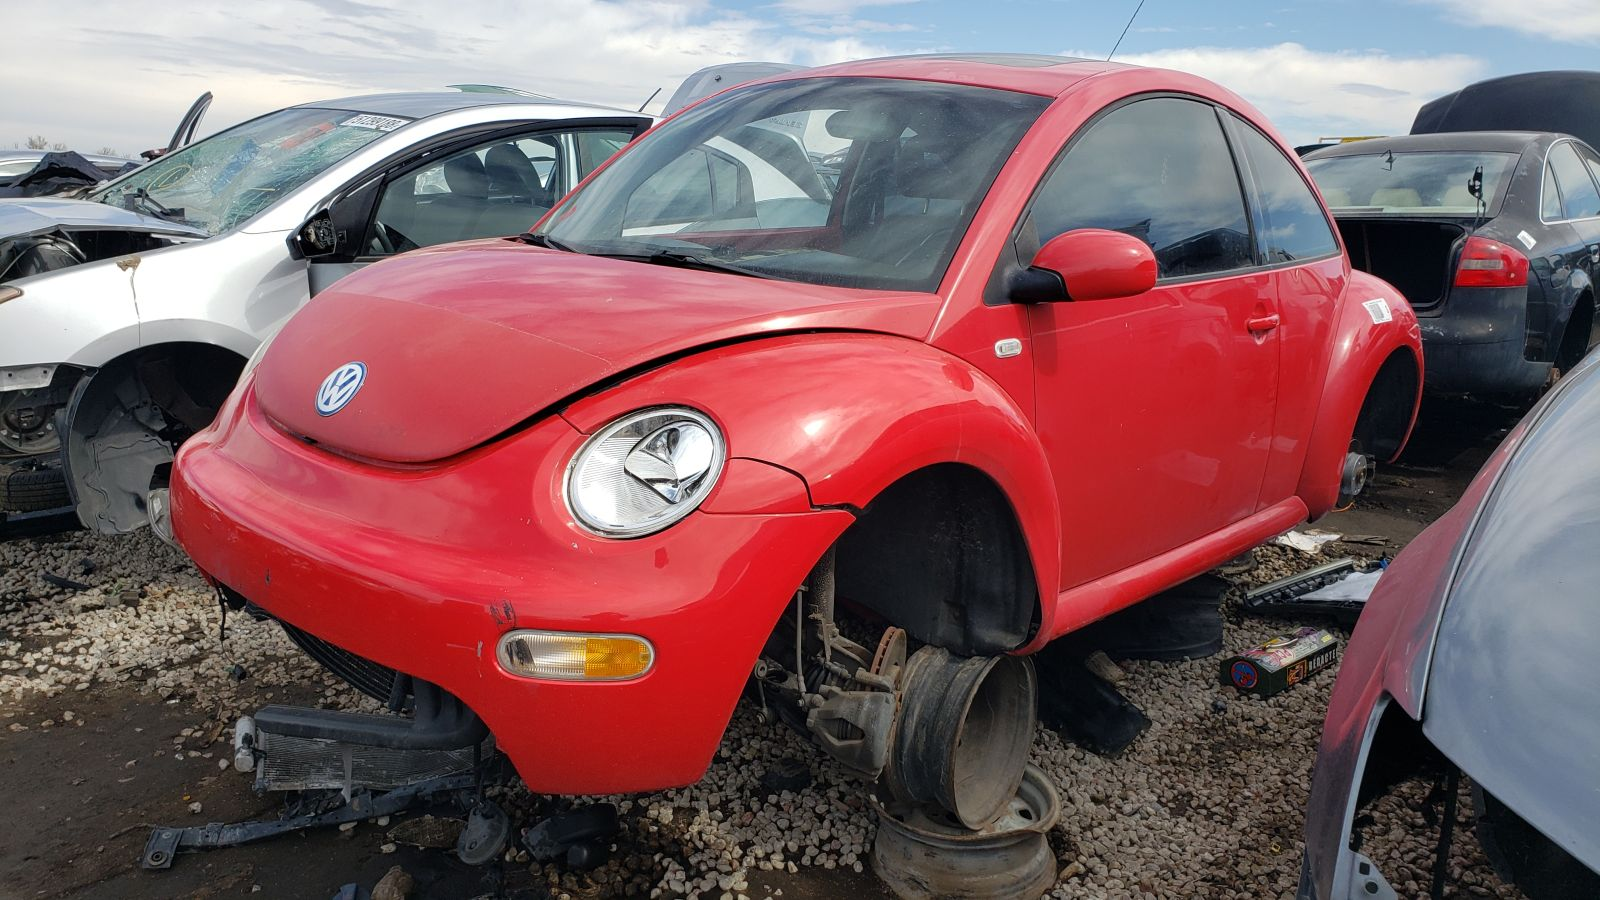 hight resolution of 2001 volkswagen new beetle in colorado wrecking yard lh front view 2019 murilee